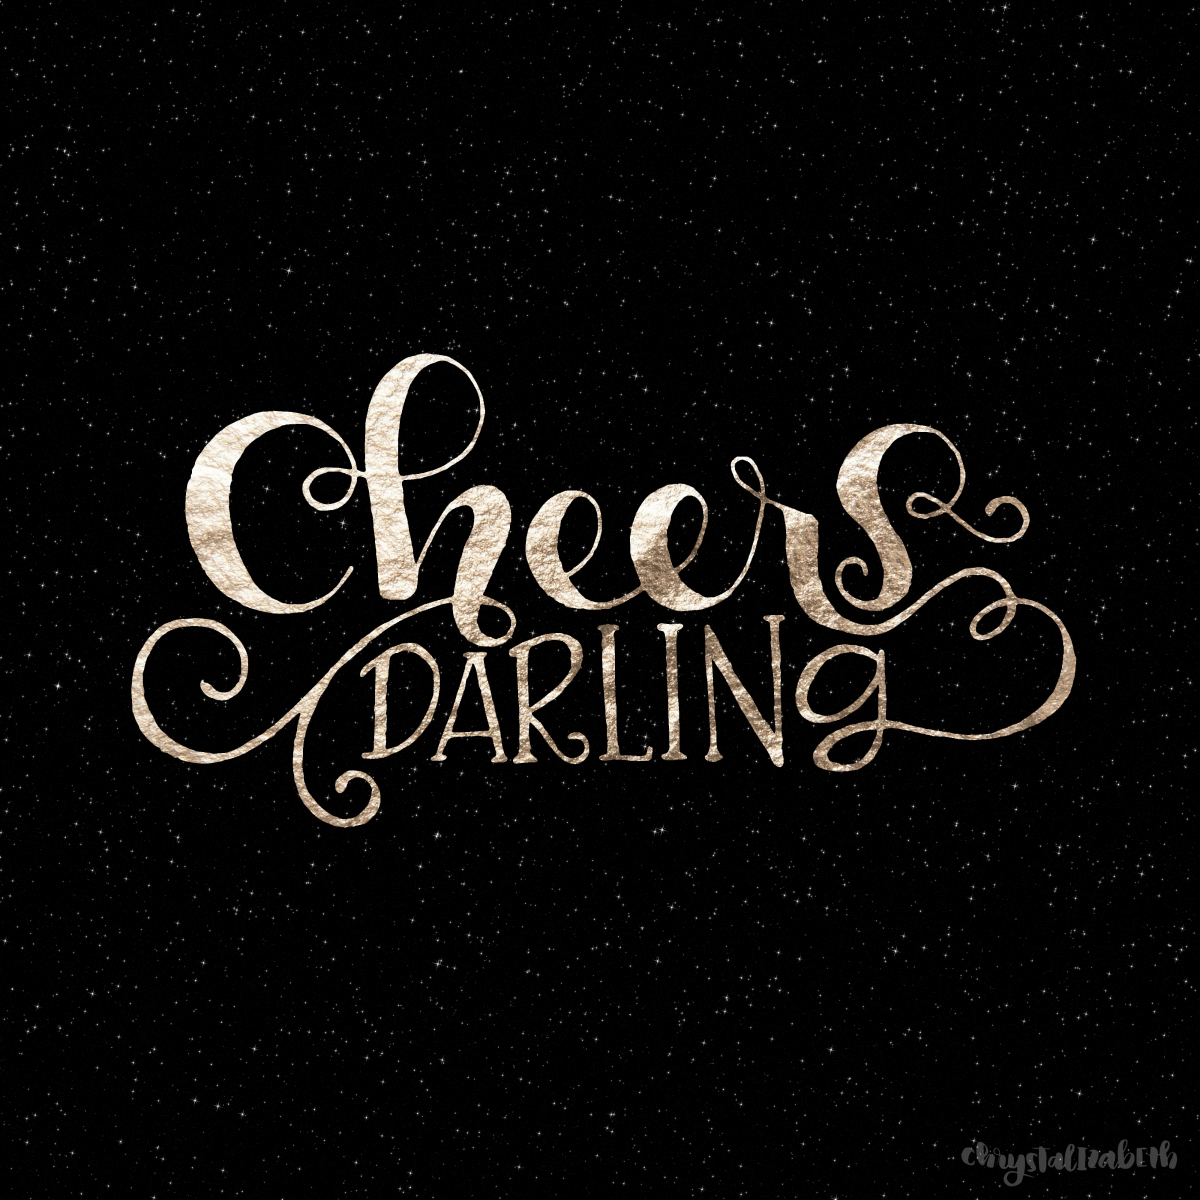 Cheers Darling! Happy New Year! [A LetteringTutorial]